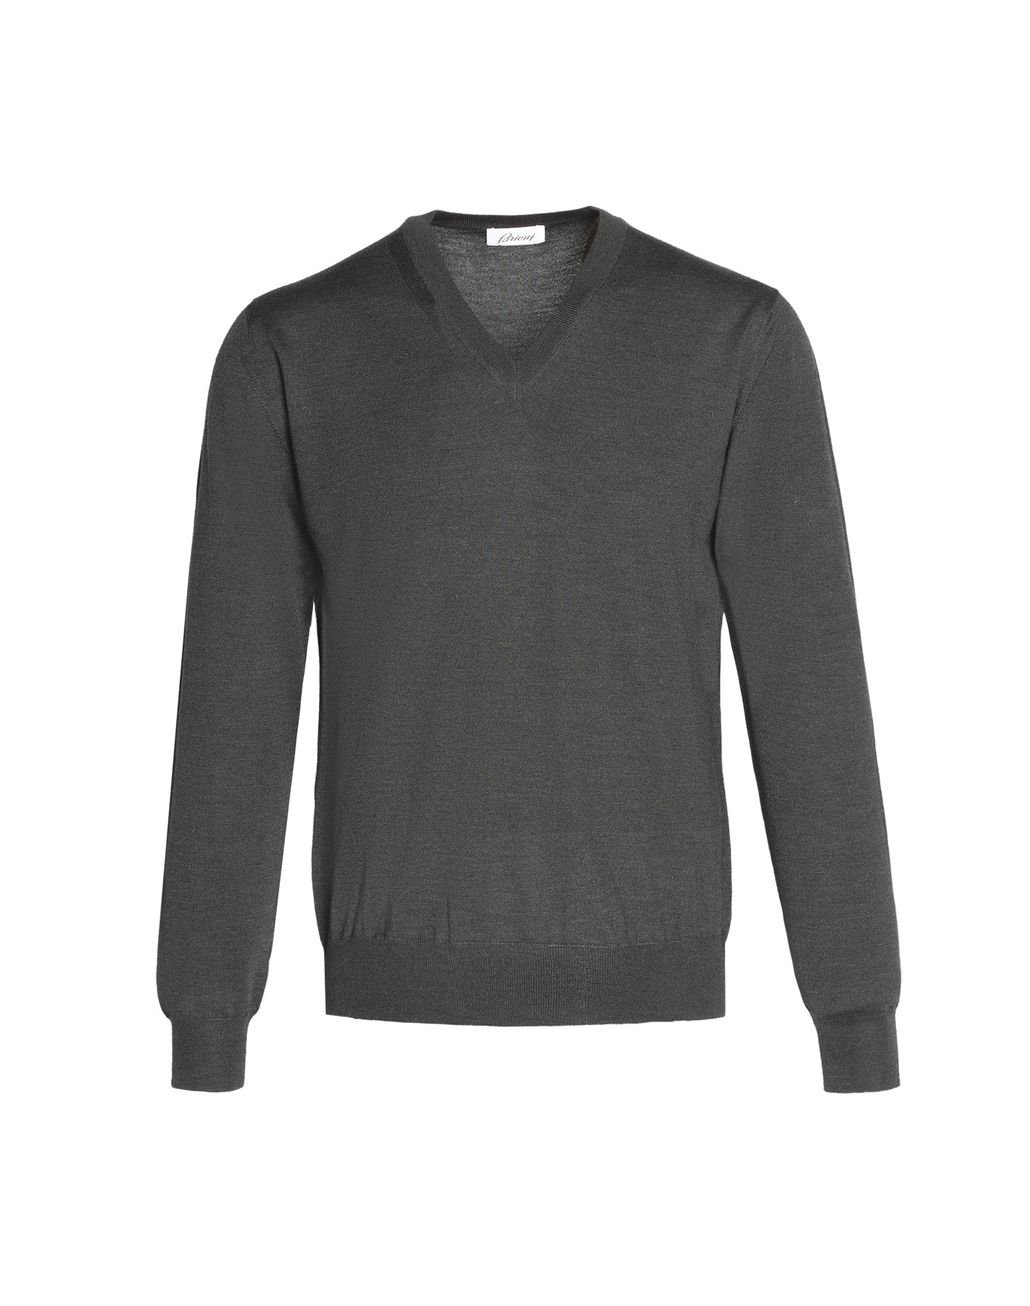 BRIONI 'Essential' Gray V-Neck Sweater Knitwear [*** pickupInStoreShippingNotGuaranteed_info ***] f